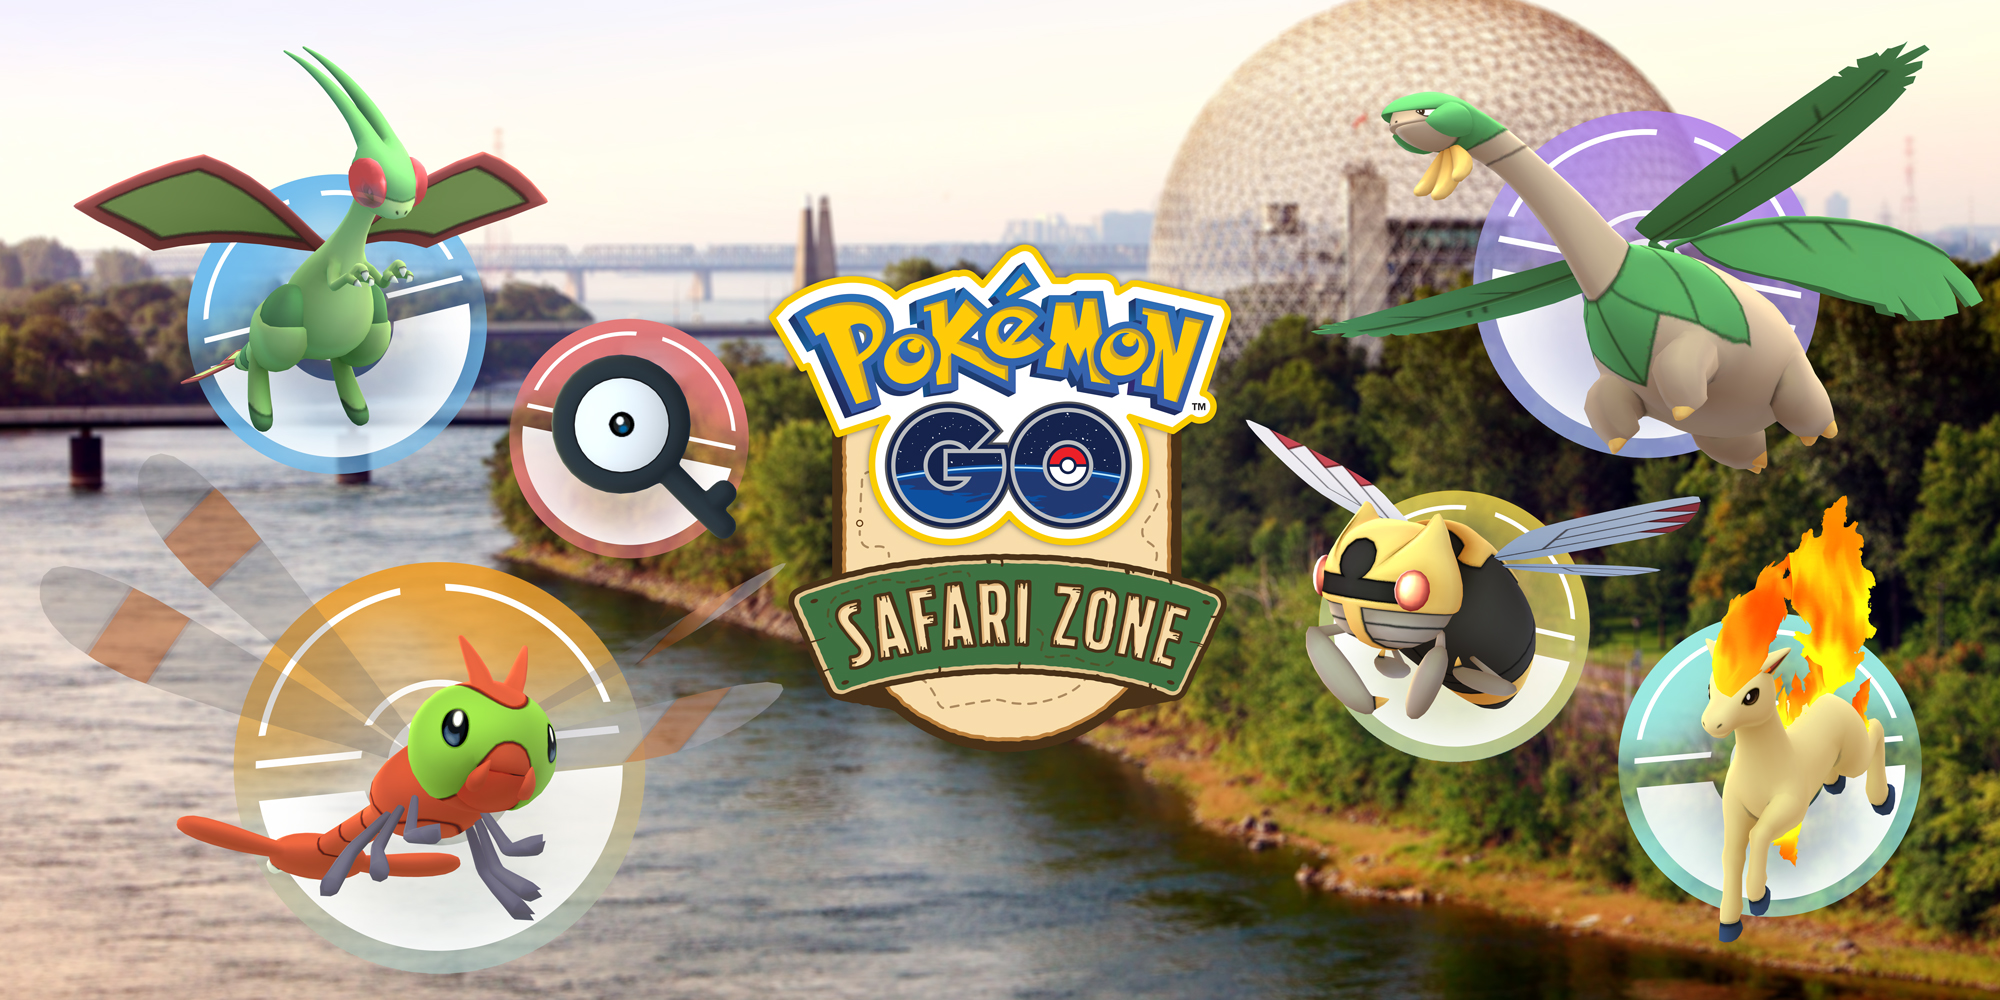 Pokémon GO Safari Zone at Montreal - Pokémon GO